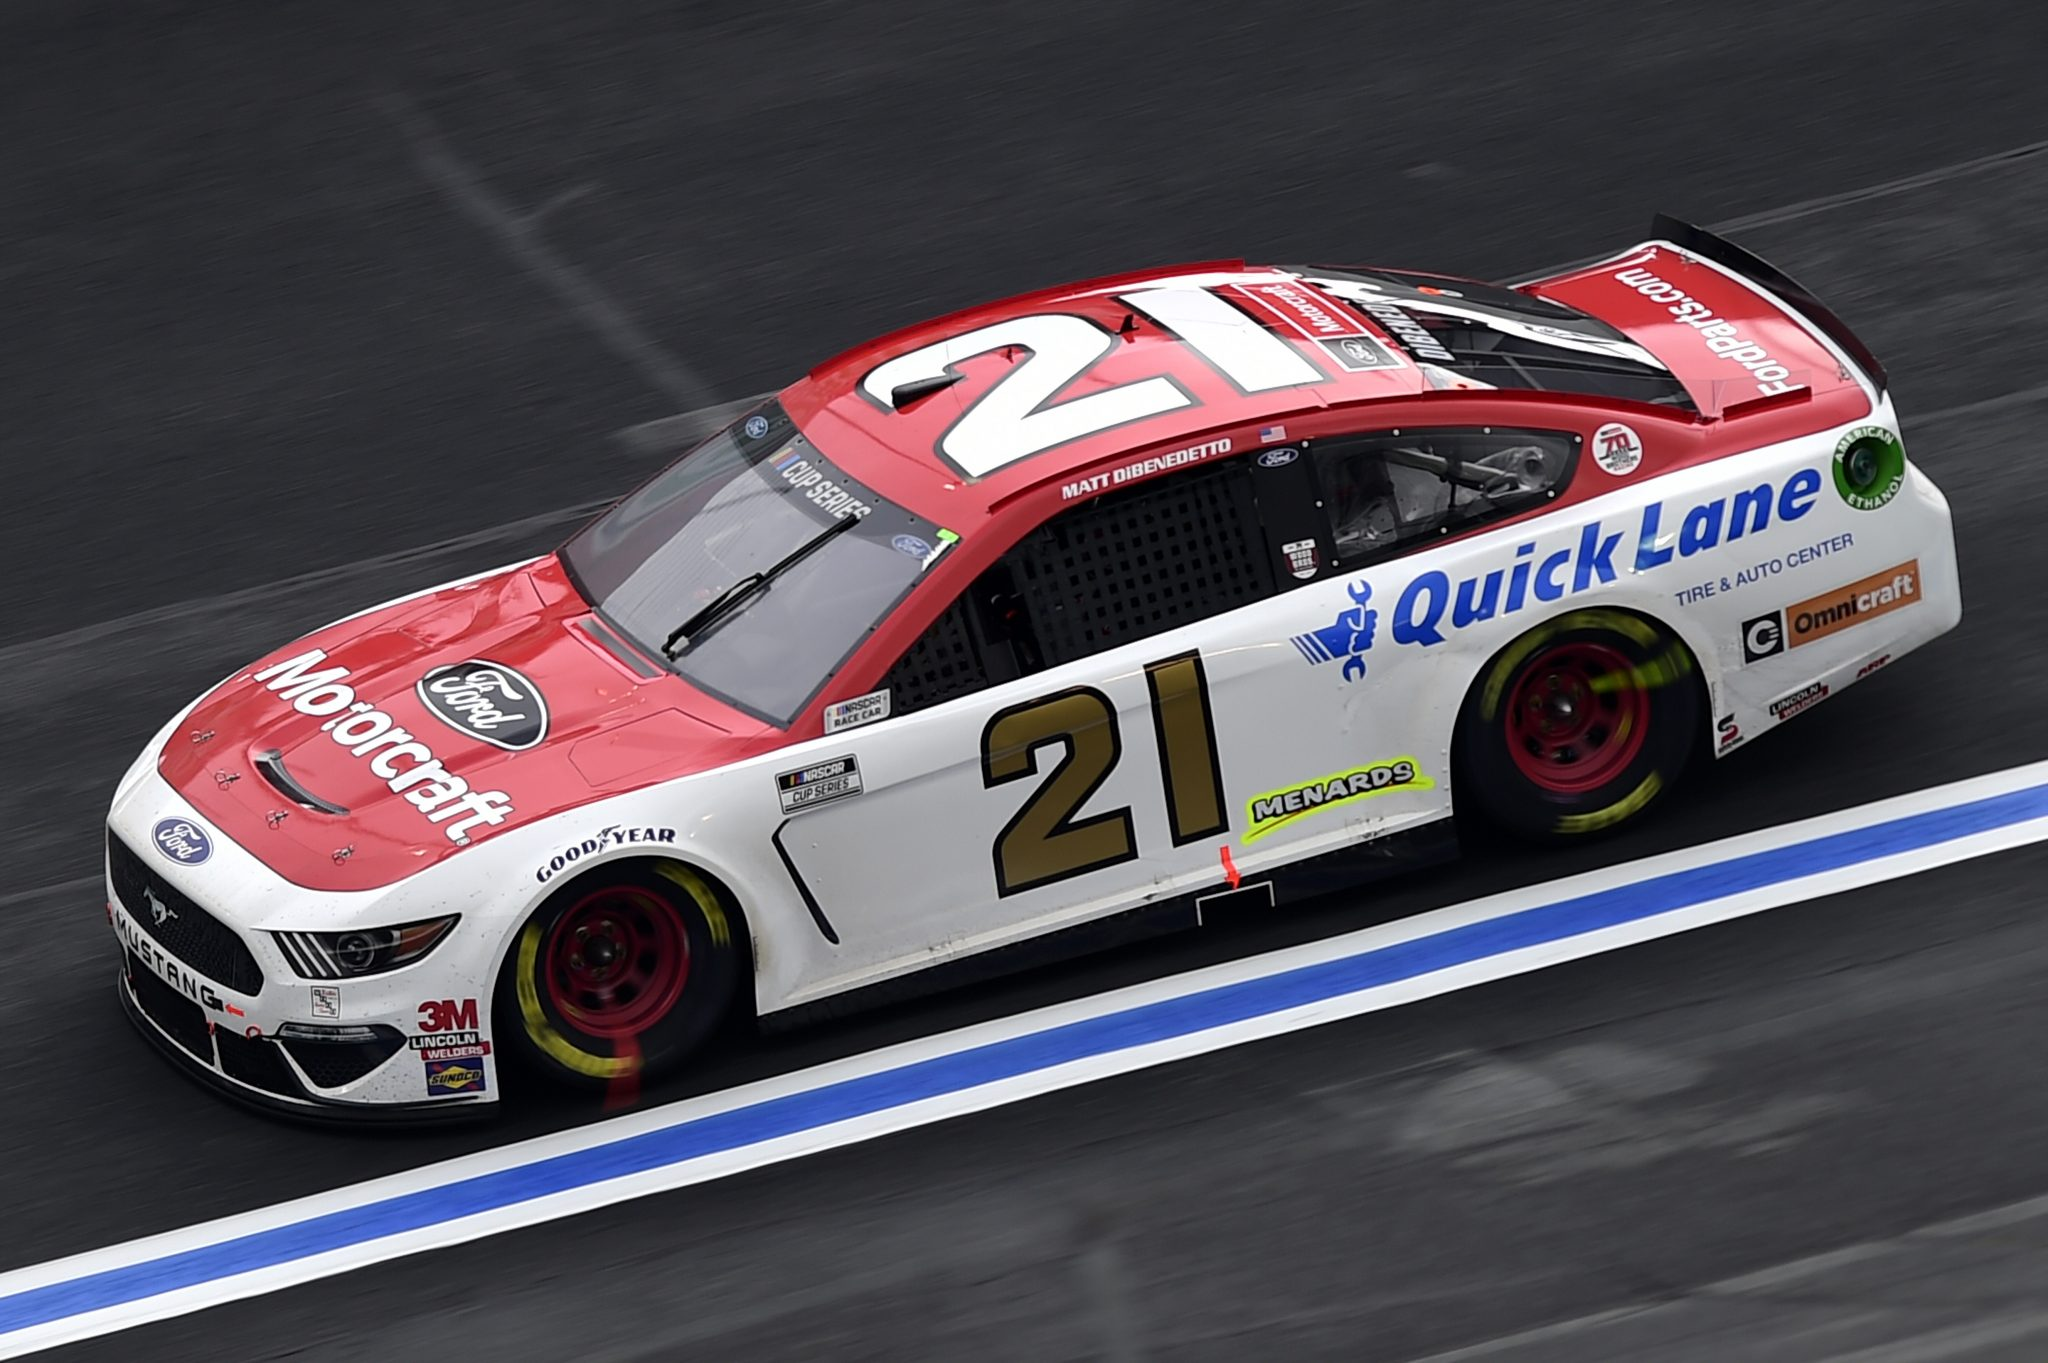 CONCORD, NORTH CAROLINA - OCTOBER 11: Matt DiBenedetto, driver of the #21 Motorcraft/Quick Lane Ford, drives during the NASCAR Cup Series Bank of America ROVAL 400 at Charlotte Motor Speedway on October 11, 2020 in Concord, North Carolina. (Photo by Jared C. Tilton/Getty Images) | Getty Images